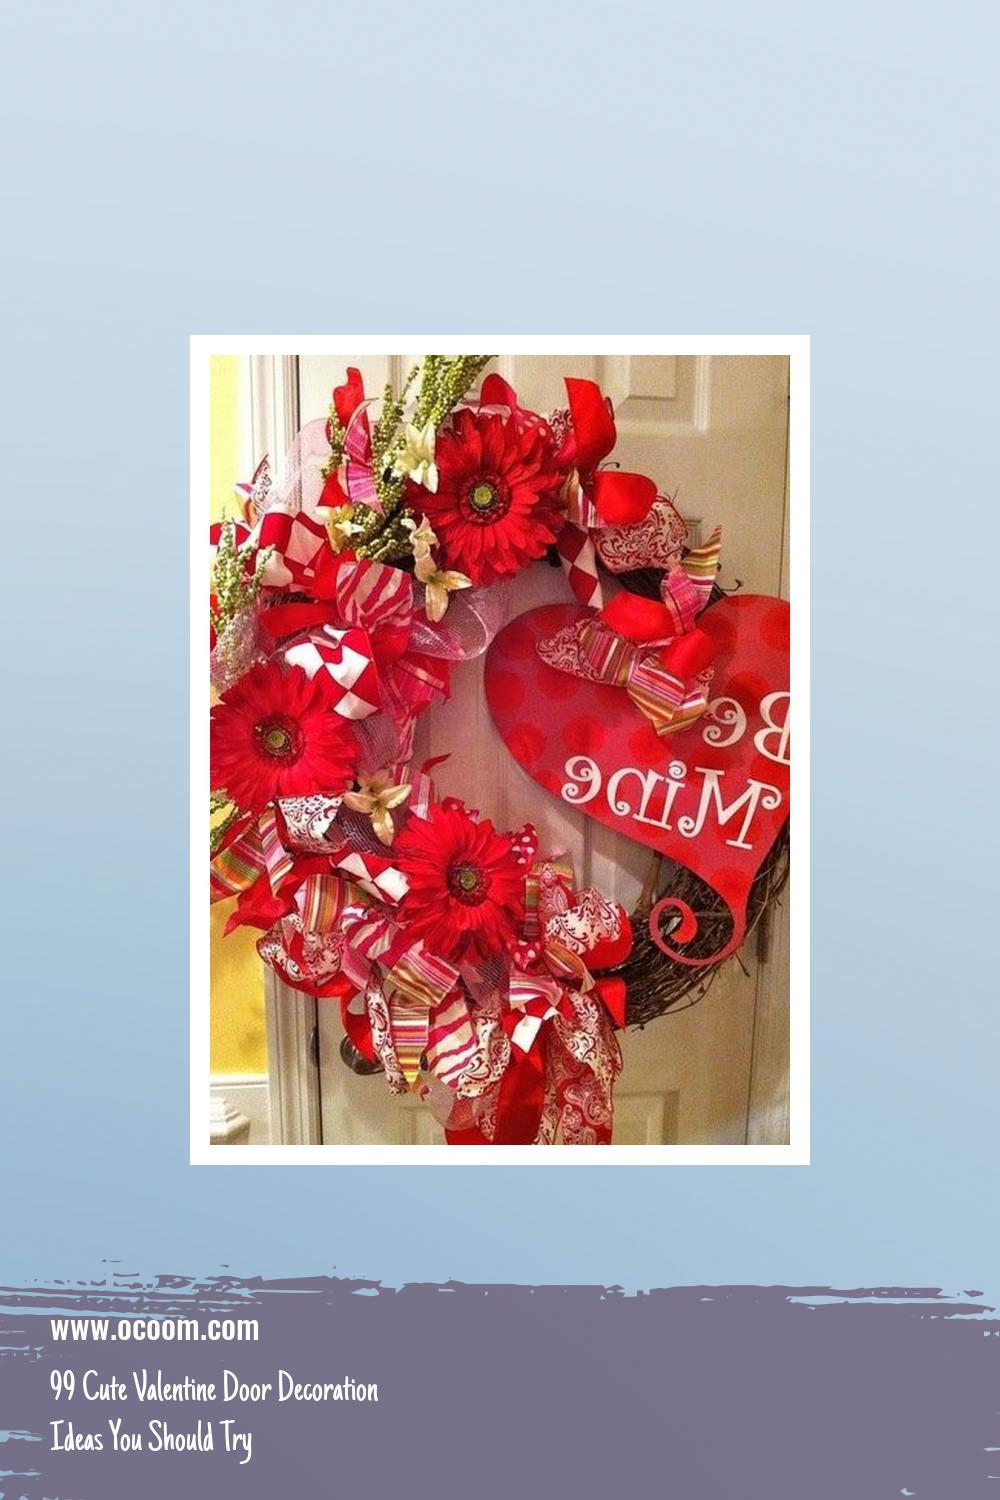 99 Cute Valentine Door Decoration Ideas You Should Try 10